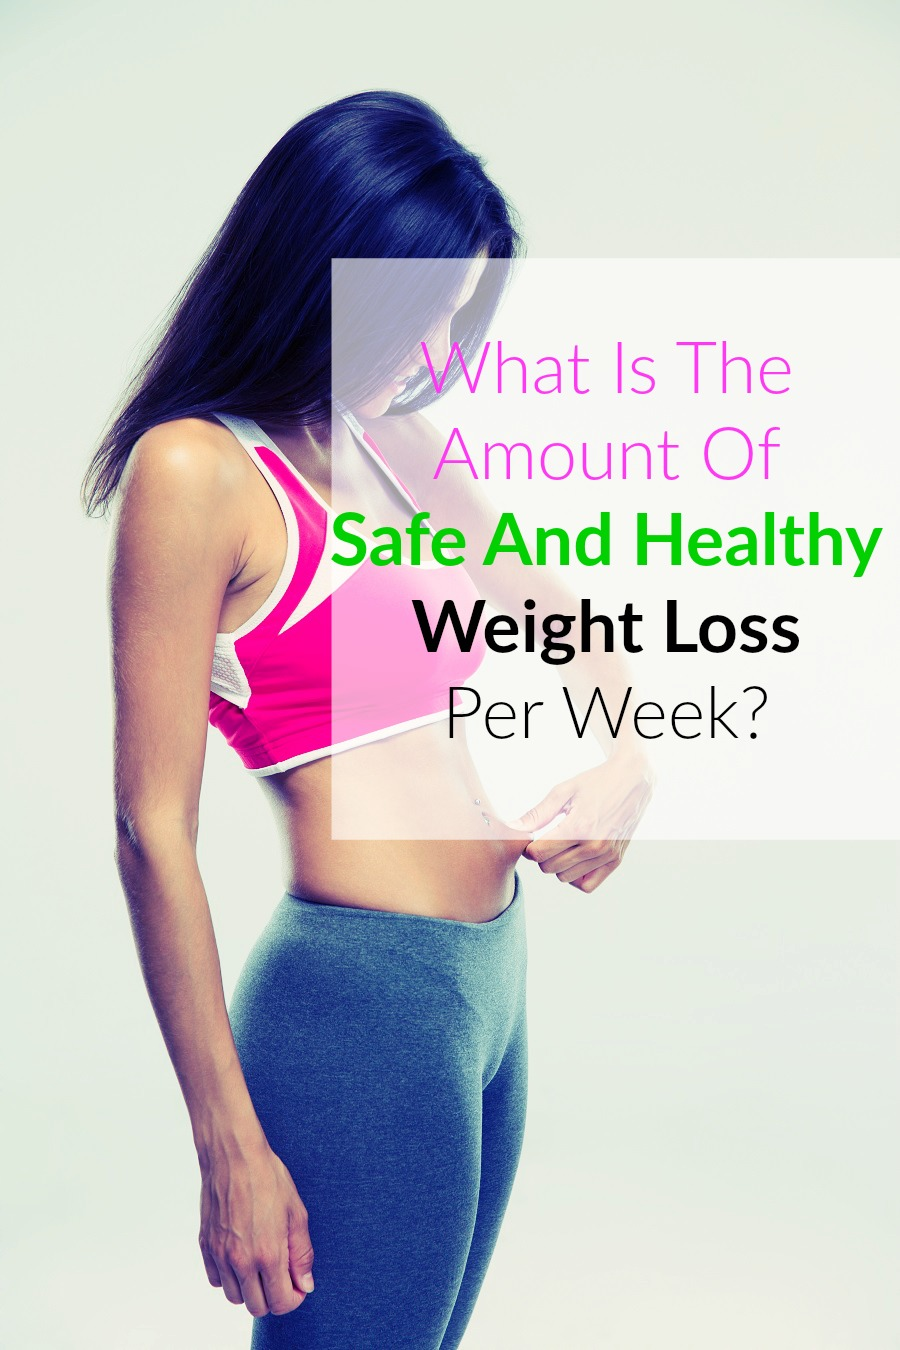 Safe And Healthy Weight Loss Per Week